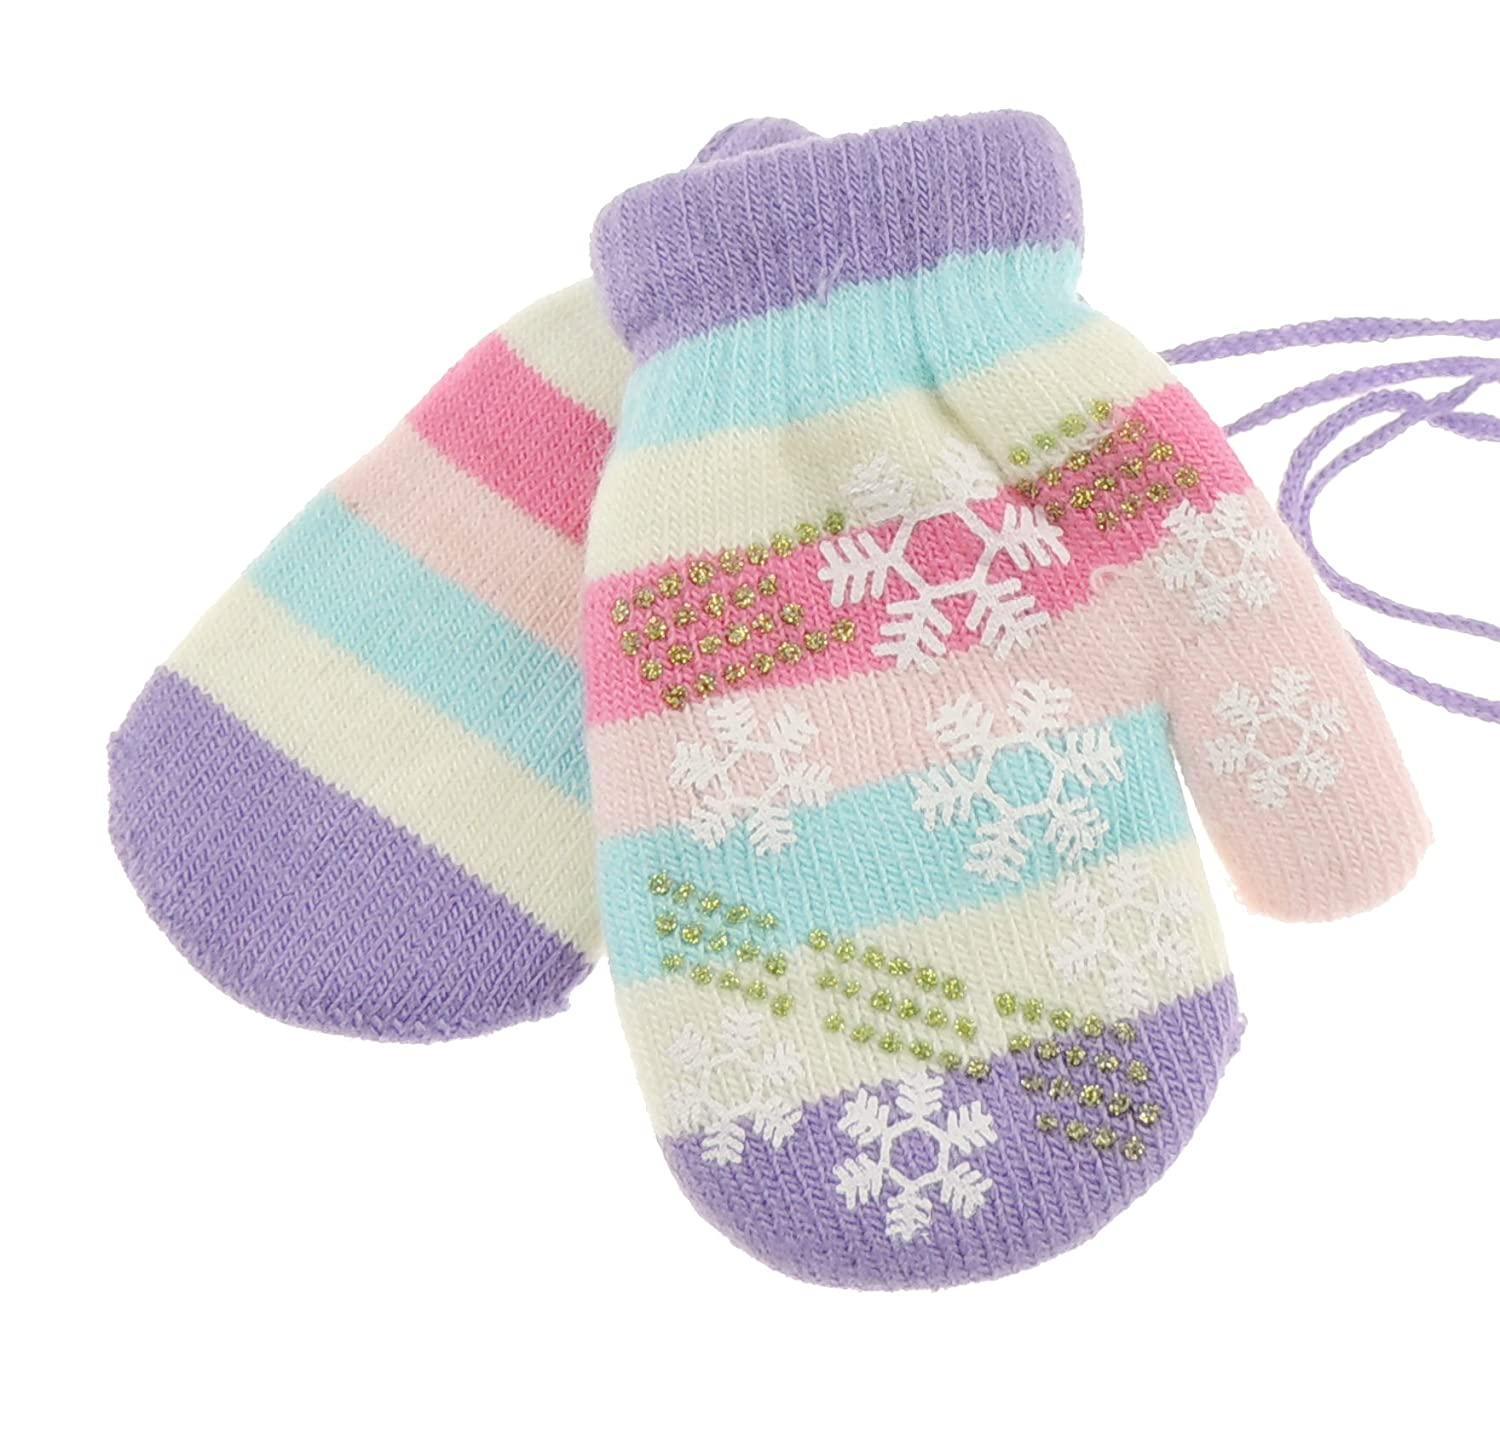 Snowflake Stripy Baby Girls Boys Warm Winter Mittens 6-24 Months Lilac Glamour Girlz